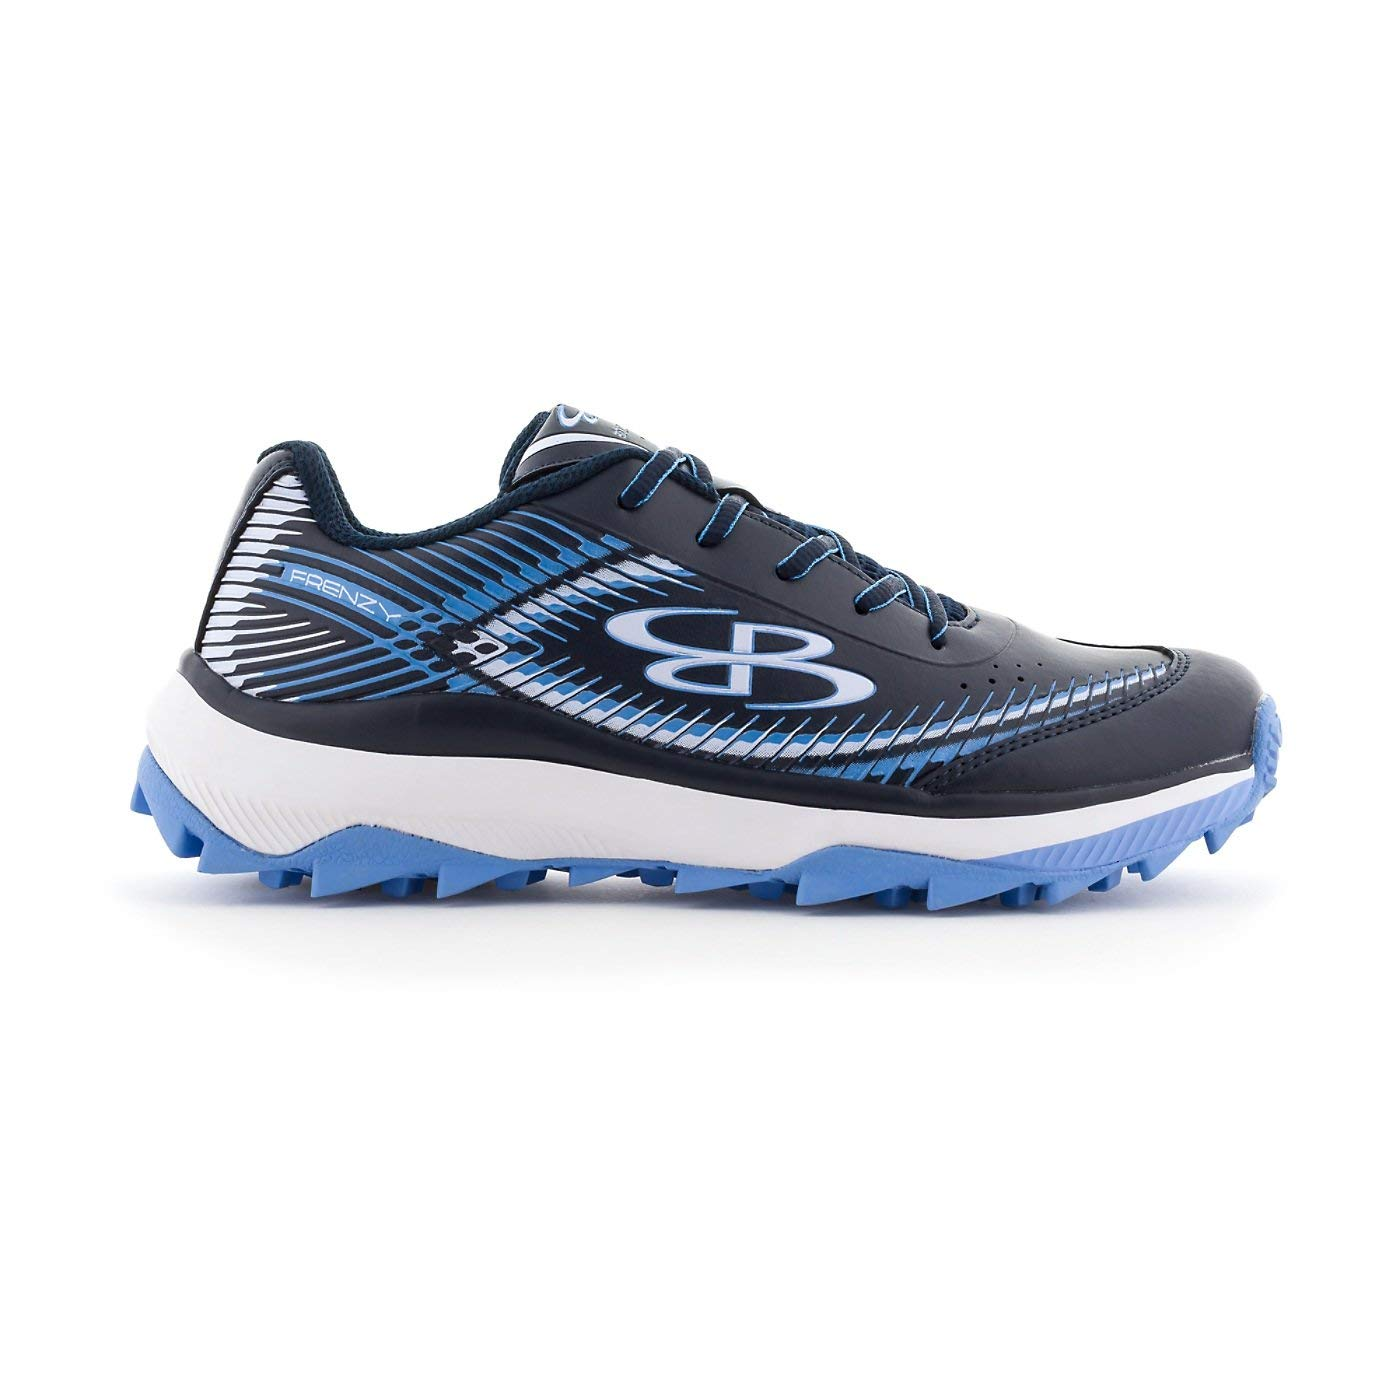 216fb6e0e67 Get Quotations · Boombah Women s Frenzy Turf Shoes - 11 Color Options -  Multiple Sizes